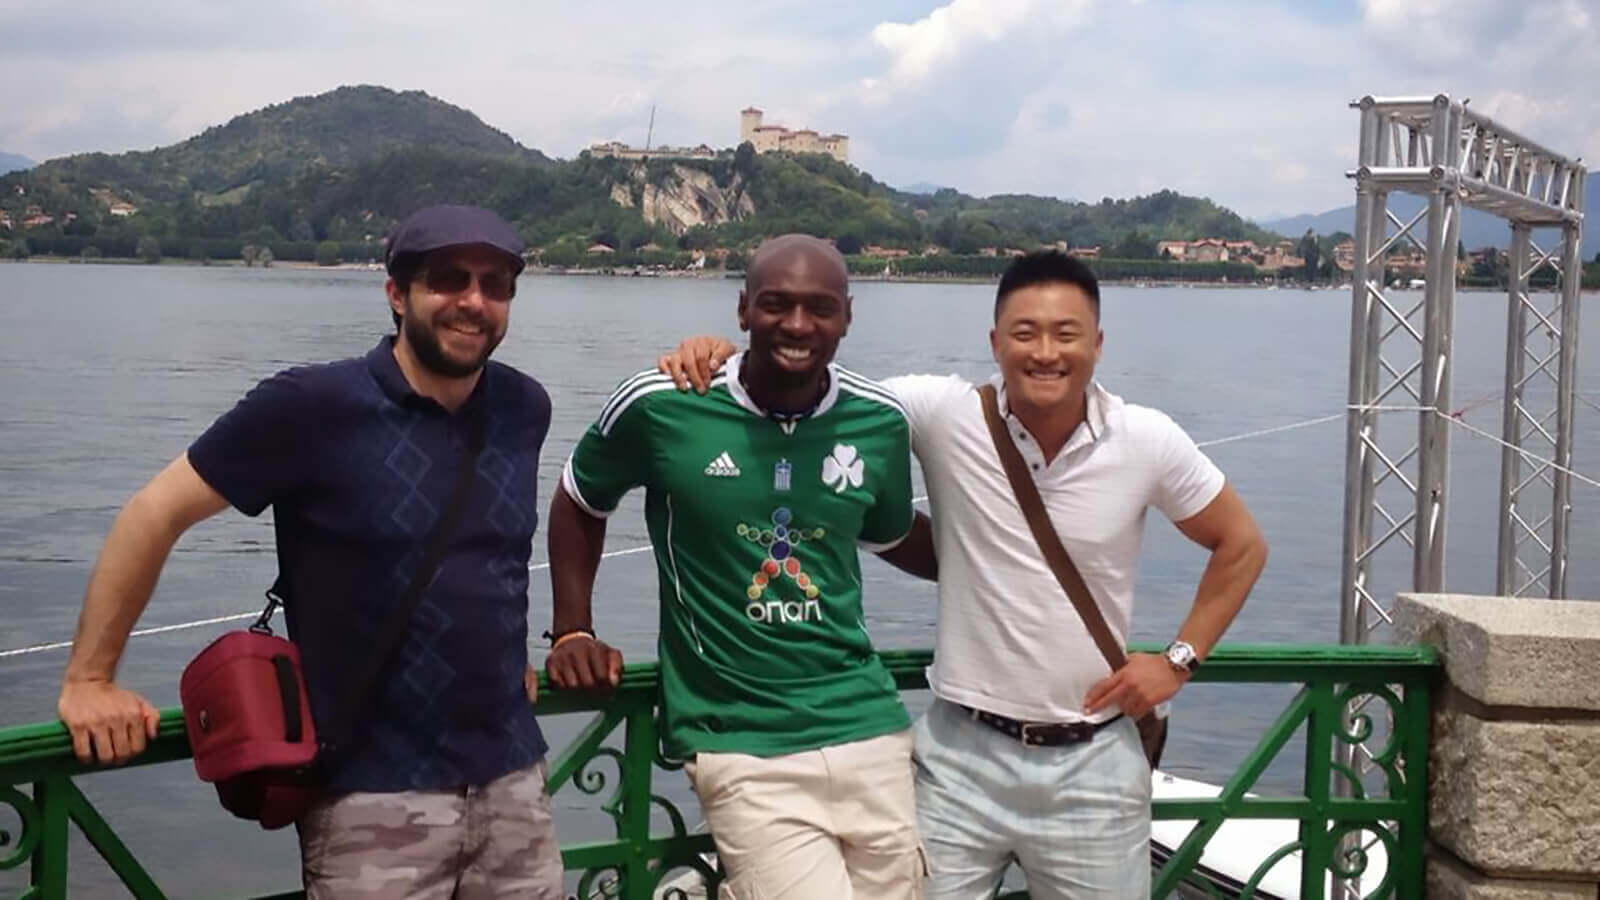 sam tam with friends in italy